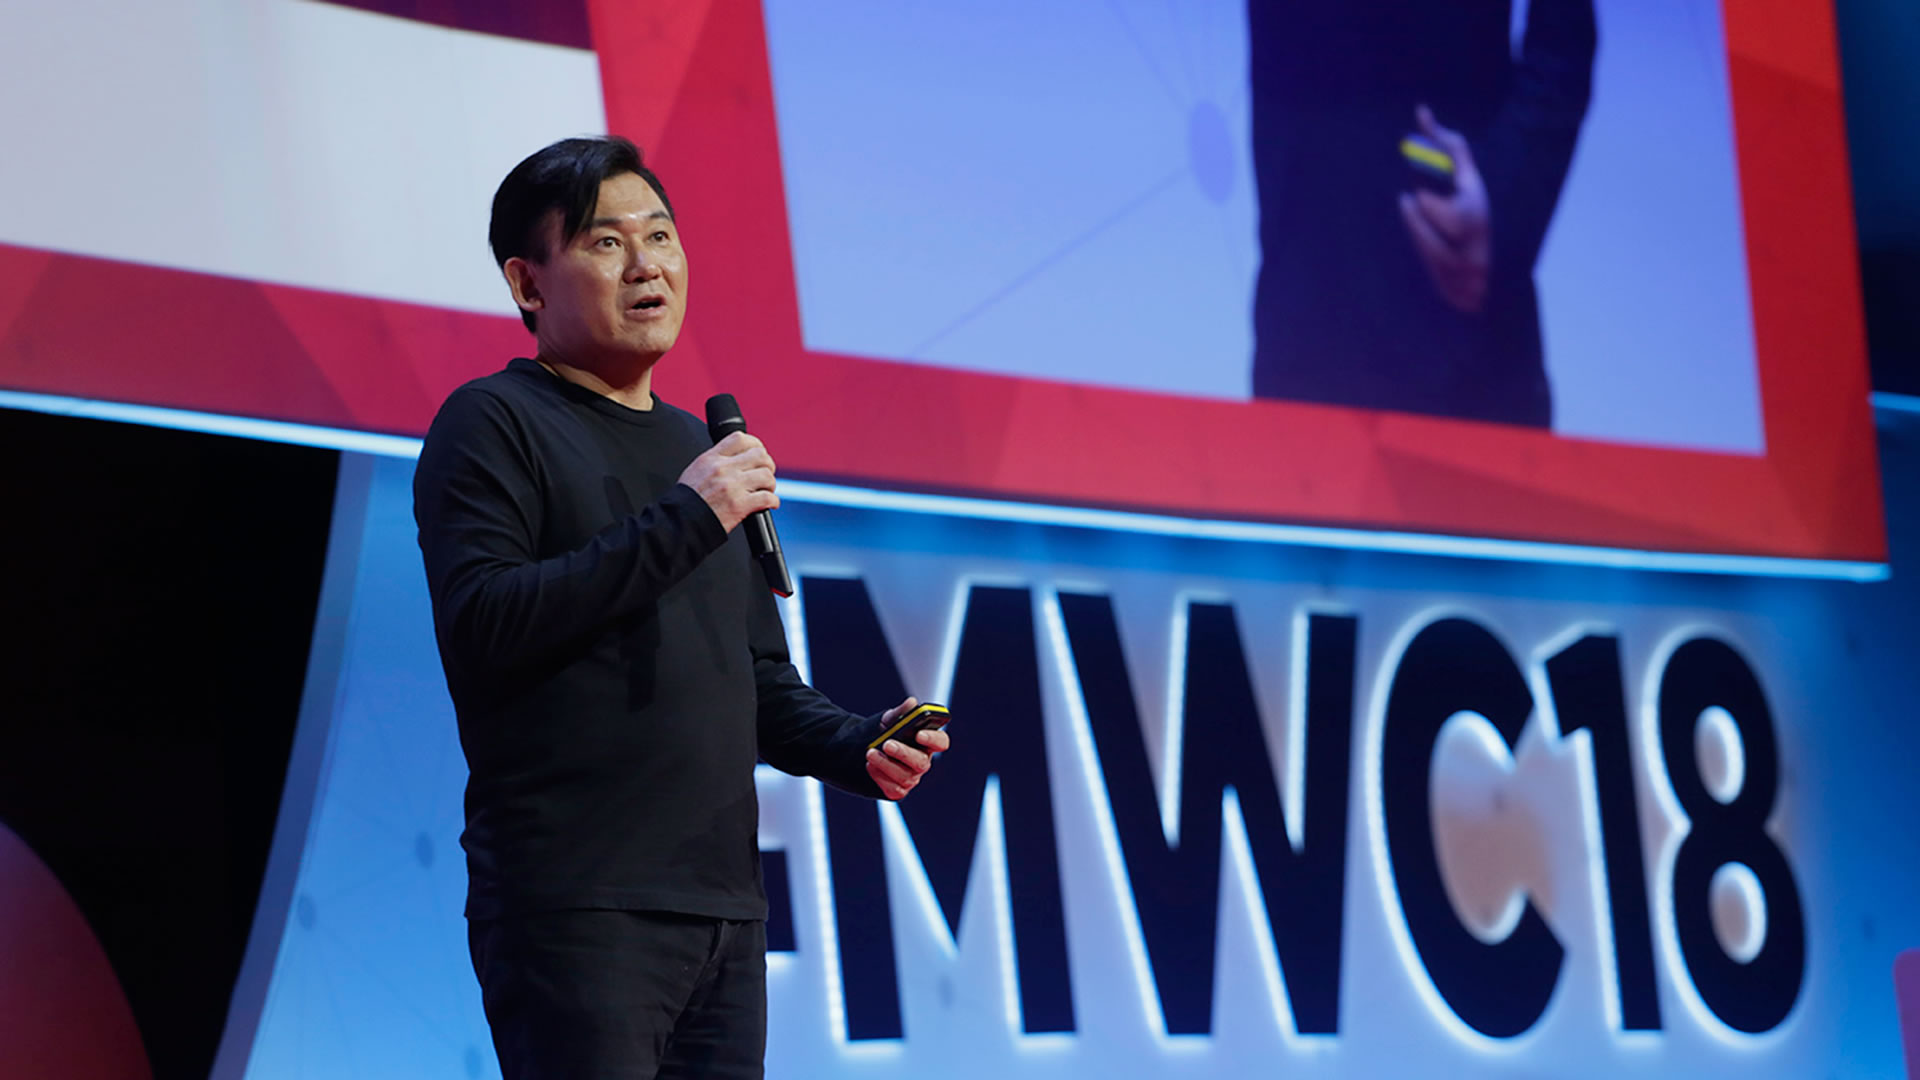 Rakuten Grabs Attention in Barcelona During Largest Mobile Industry Event